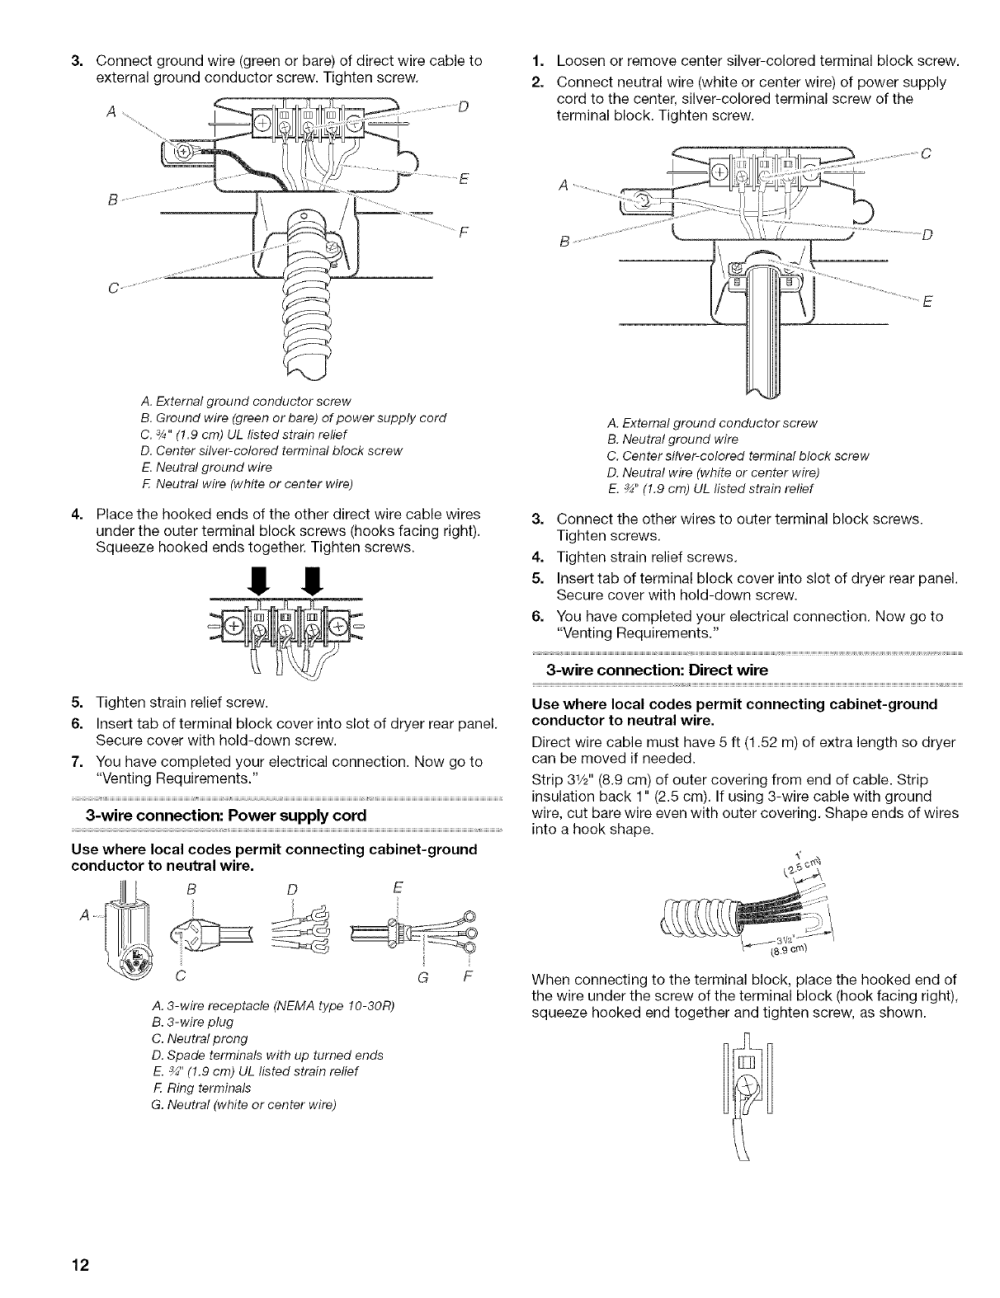 medium resolution of page 12 of kenmore clothes dryer 110 8586 user guide electric dryers direct 3wire connection